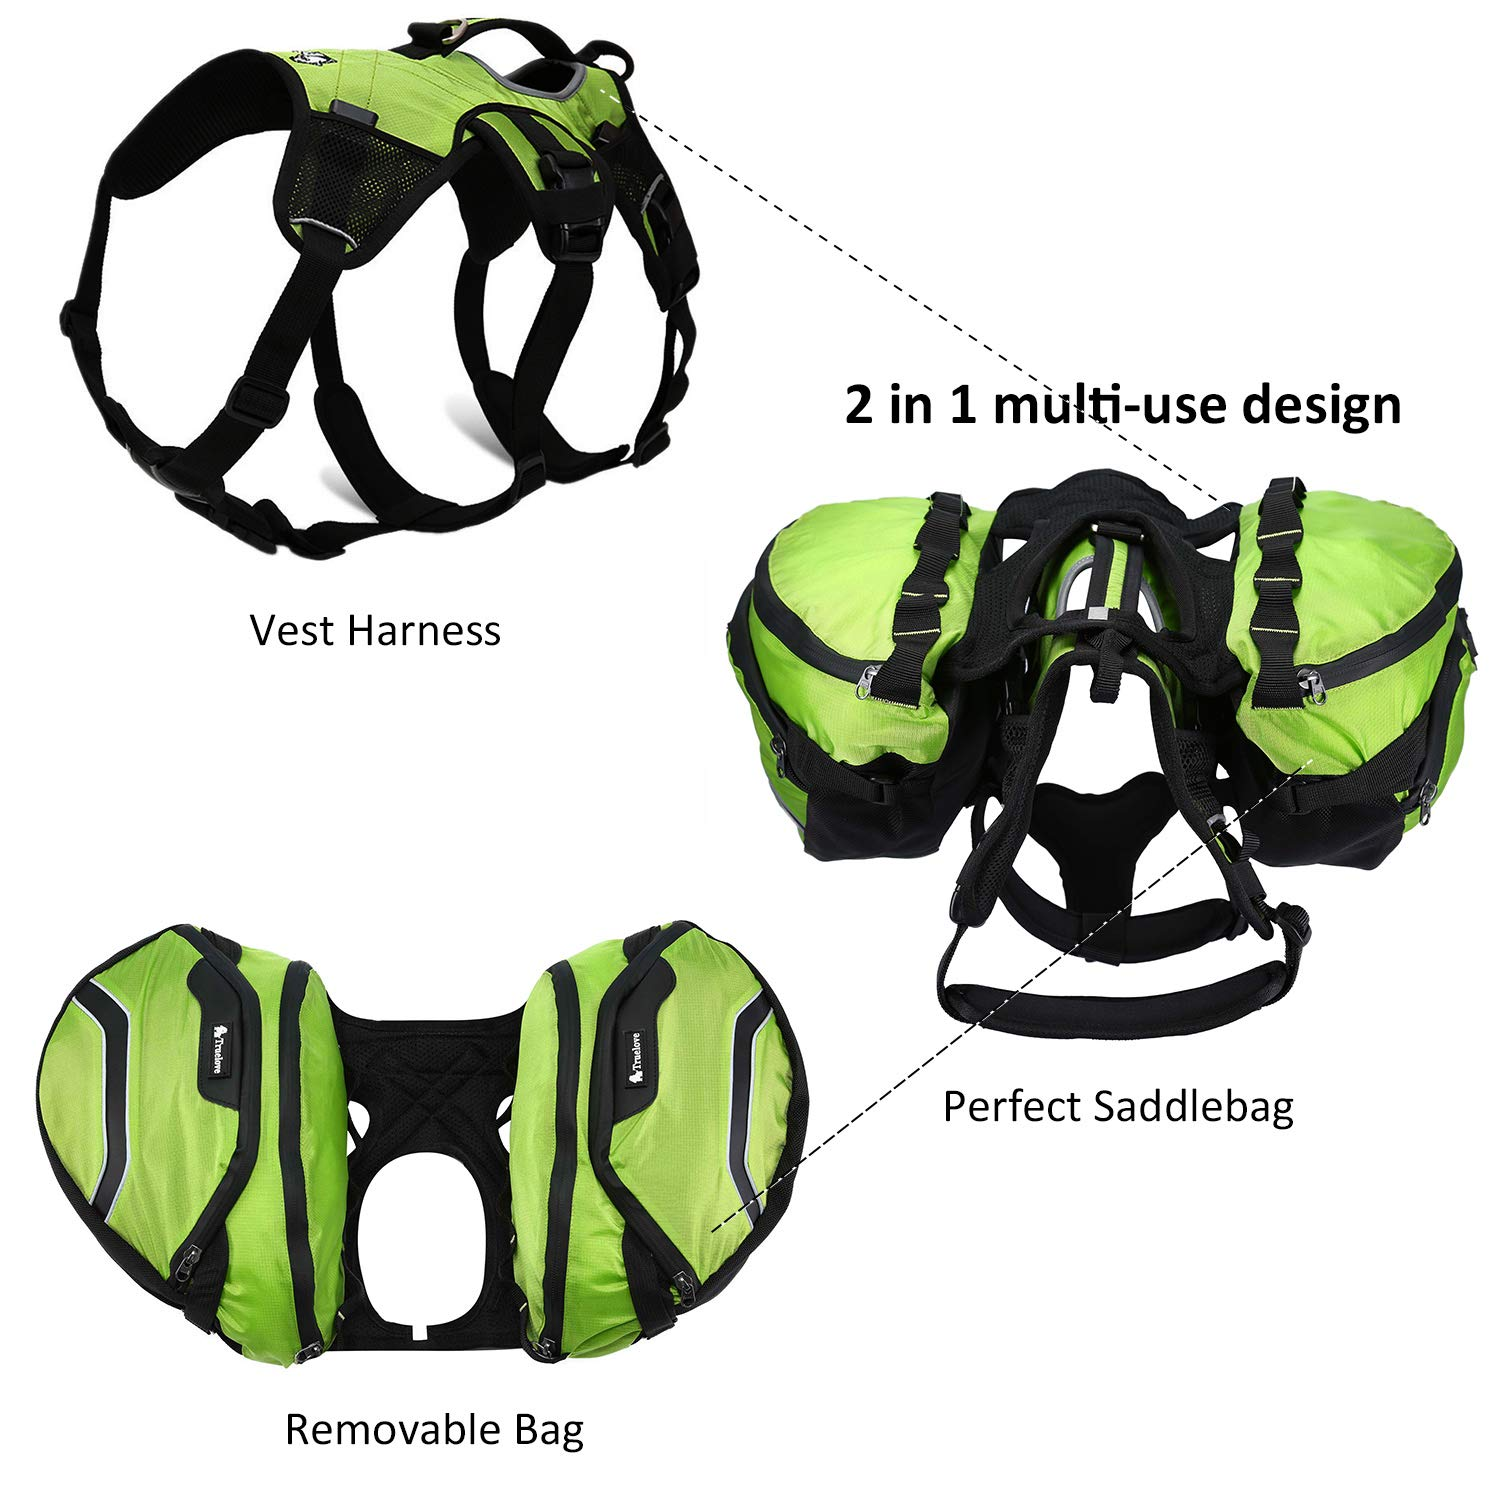 Pettom Dog Saddle Backpack 2 in 1 Saddblebag Vest Harness with Waterproof for Backpacking, Hiking, Travel, for Small, Medium Large Dogs